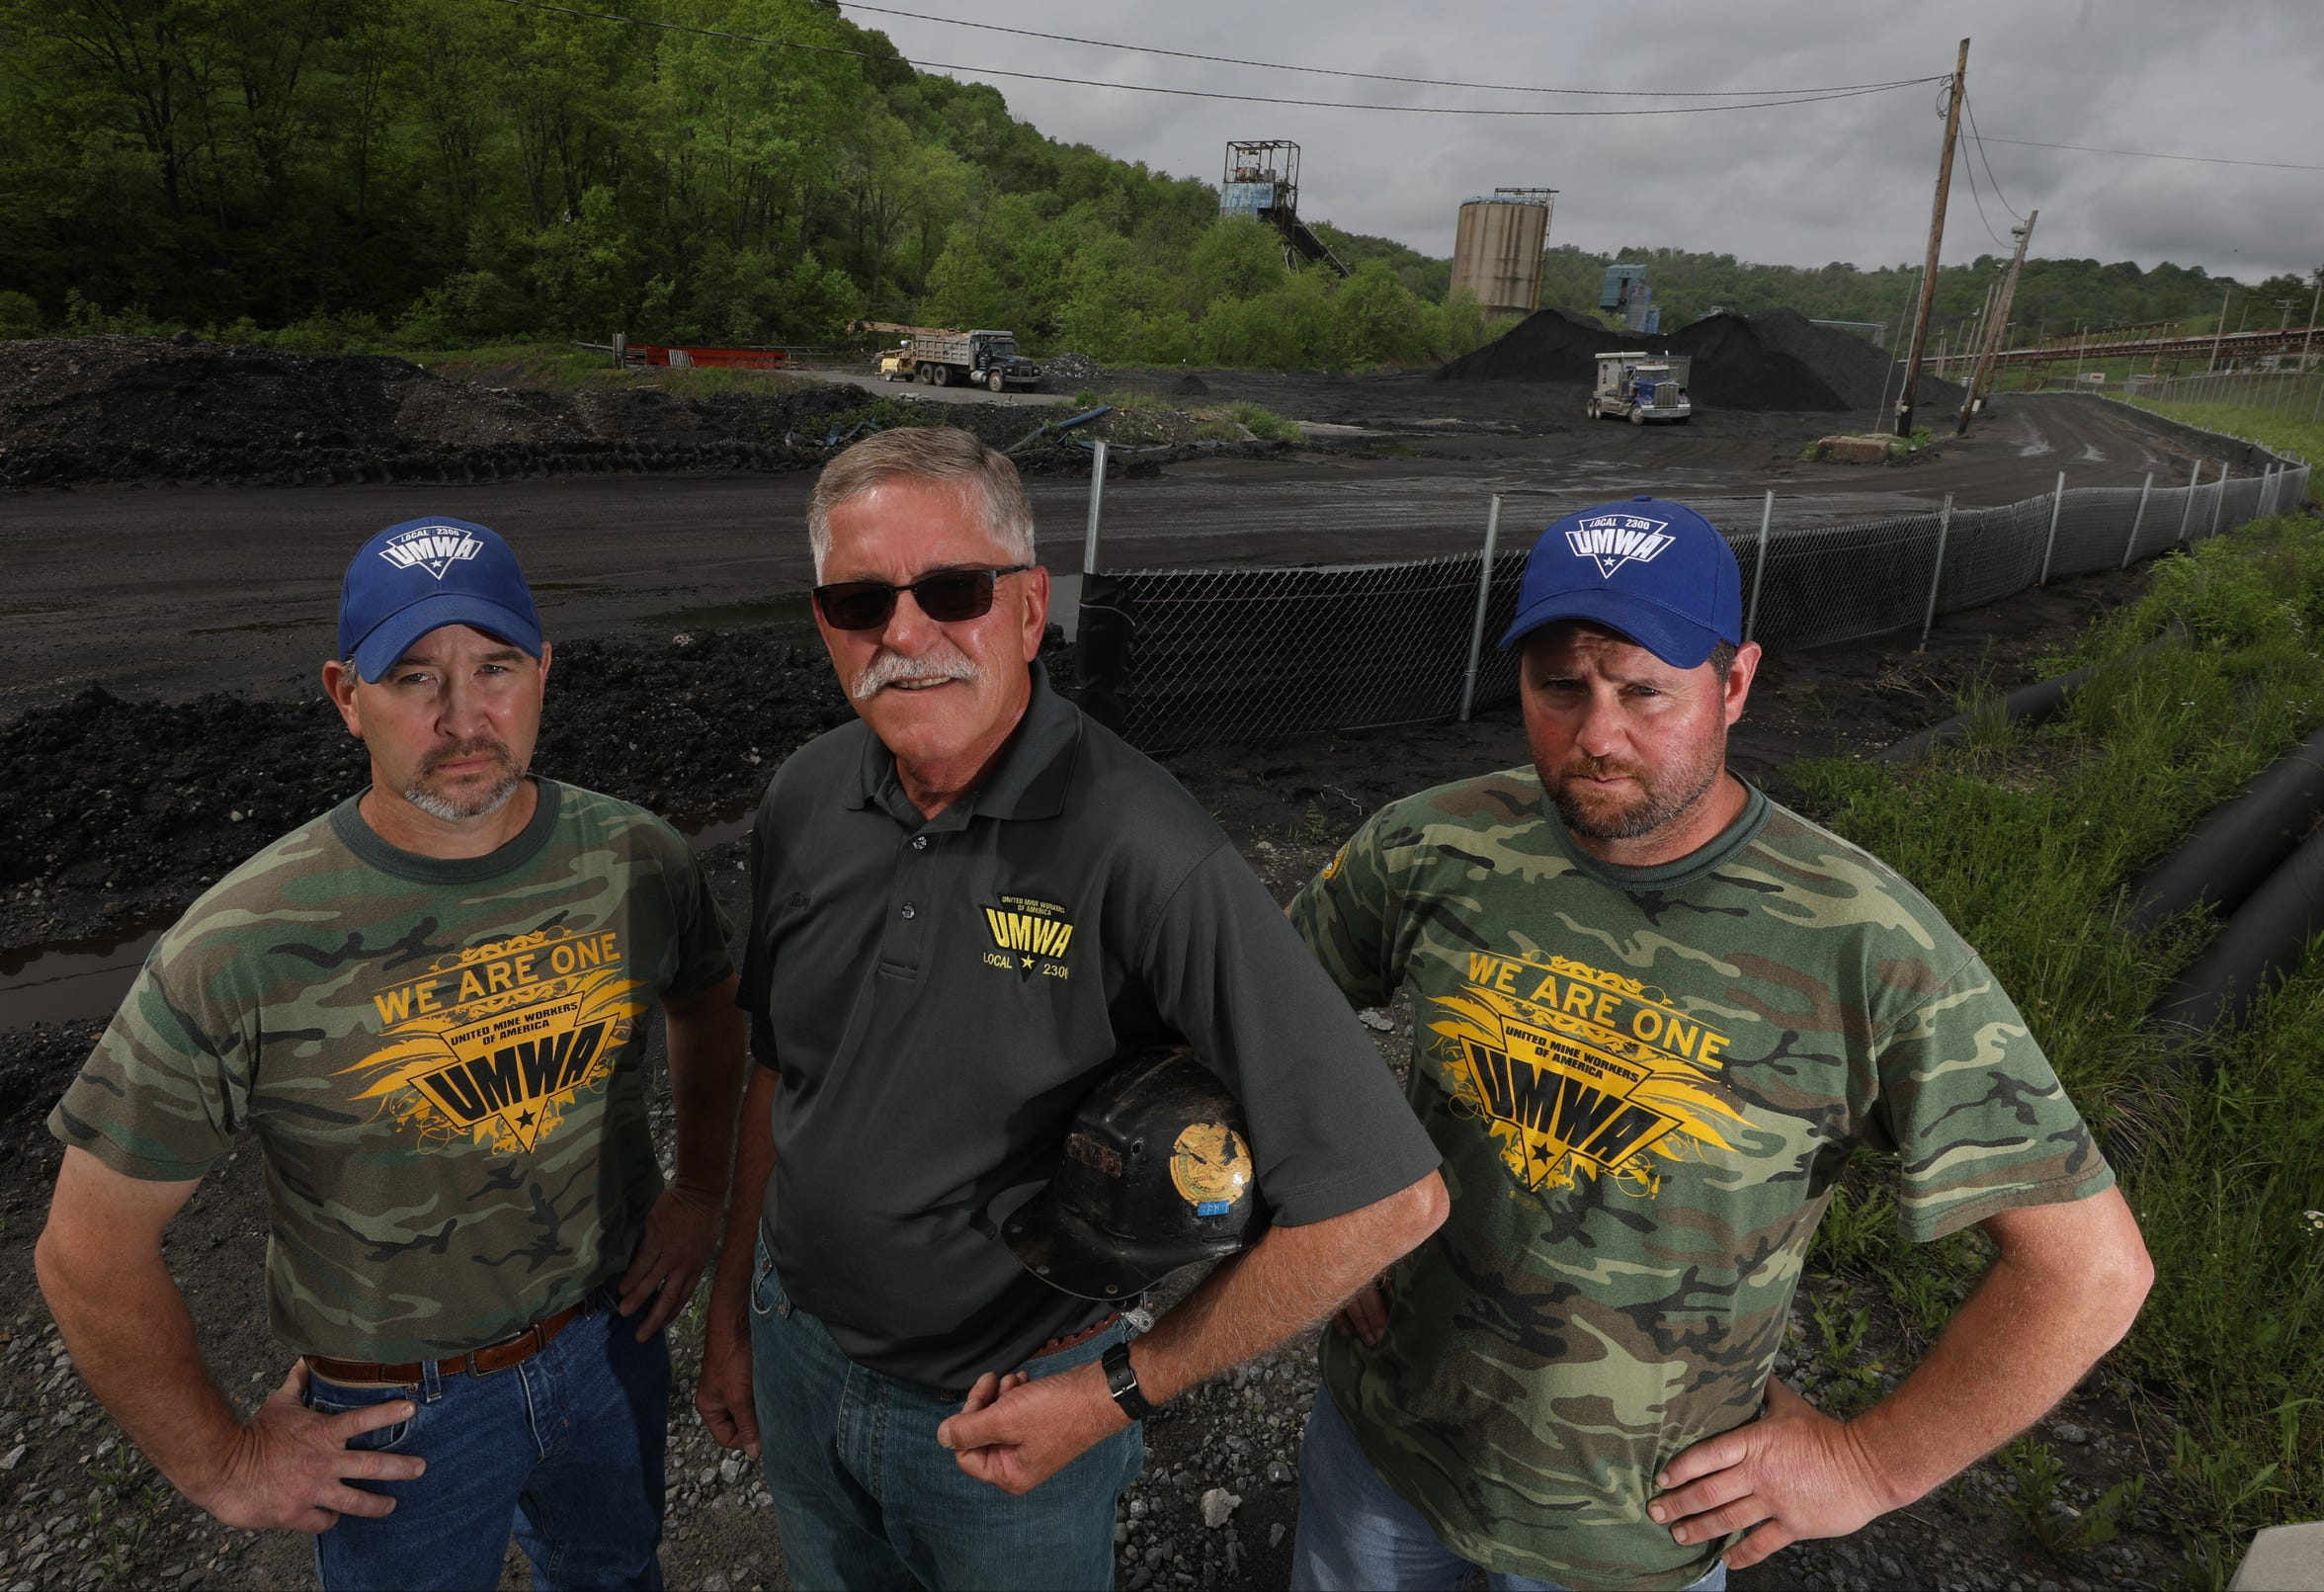 From left, Chad Wendell, Tony Brnusak and Jim Burk outside the Cumberland Mine south of Waynesburg, Pennsylvania.